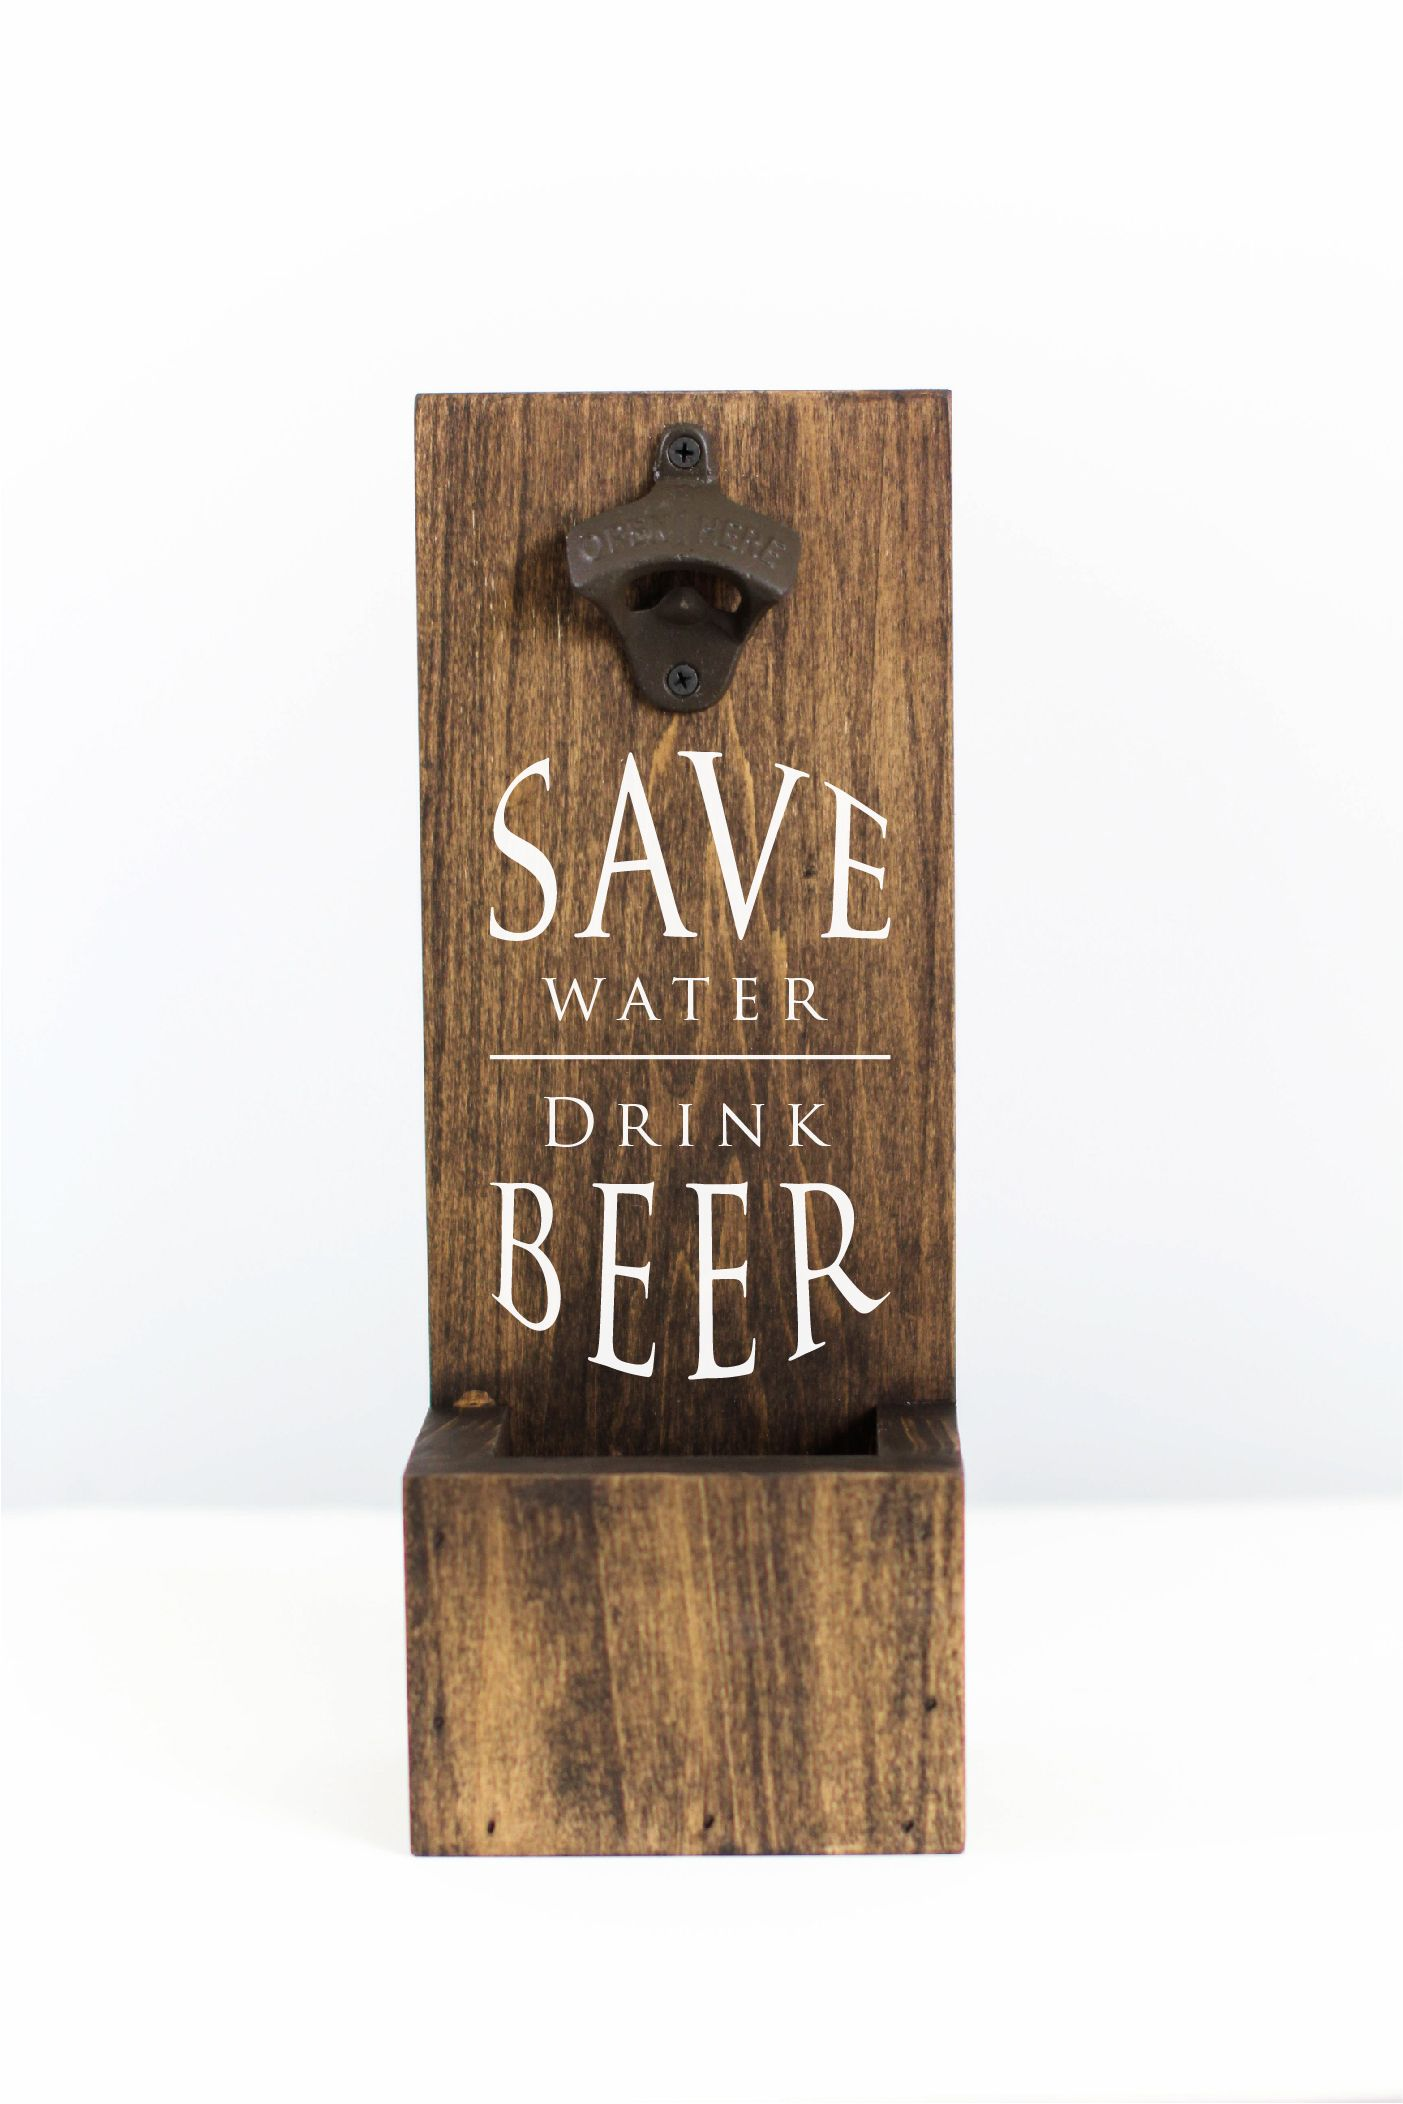 Save Water Drink Beer Bottle Opener | Gifts for Him | Man Cave Decor | SS-65 #palettendeko